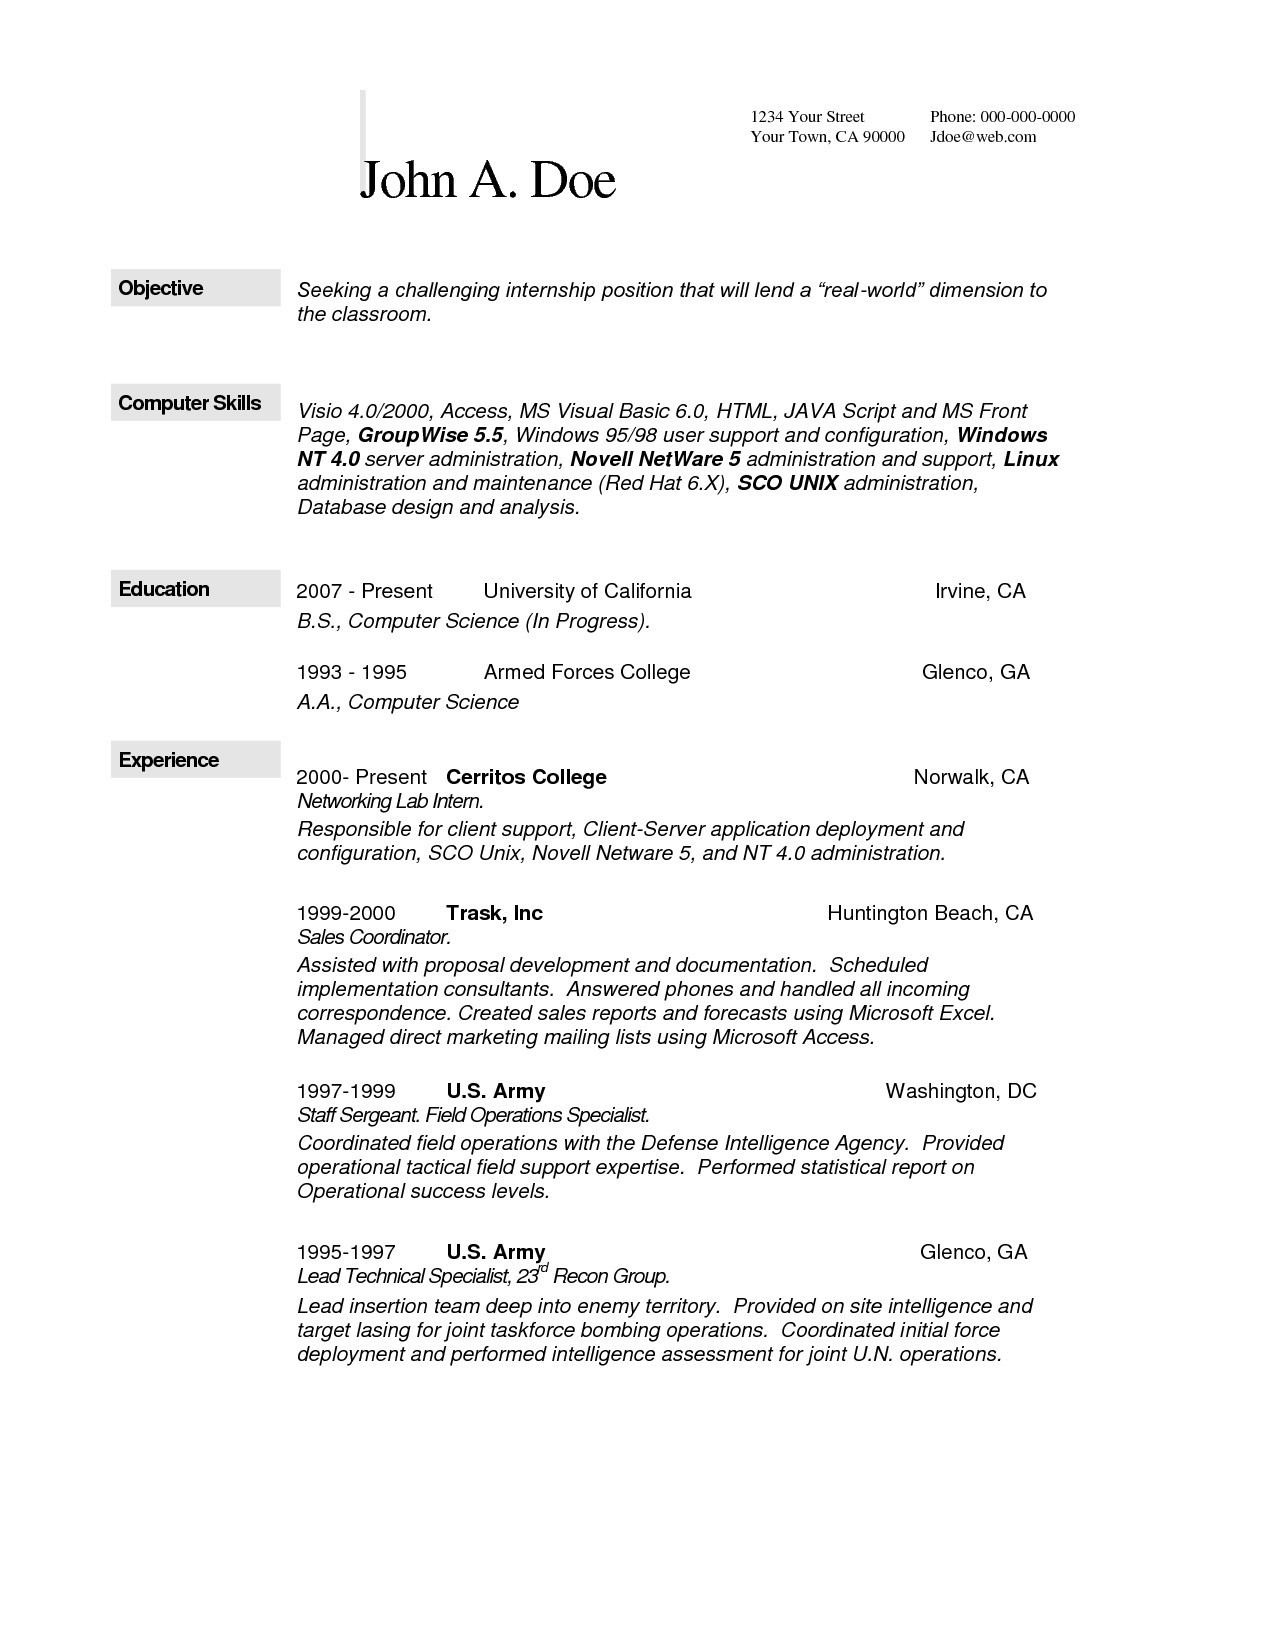 Computer Science Internship Resume - Awesome Omputer Science Resume Example